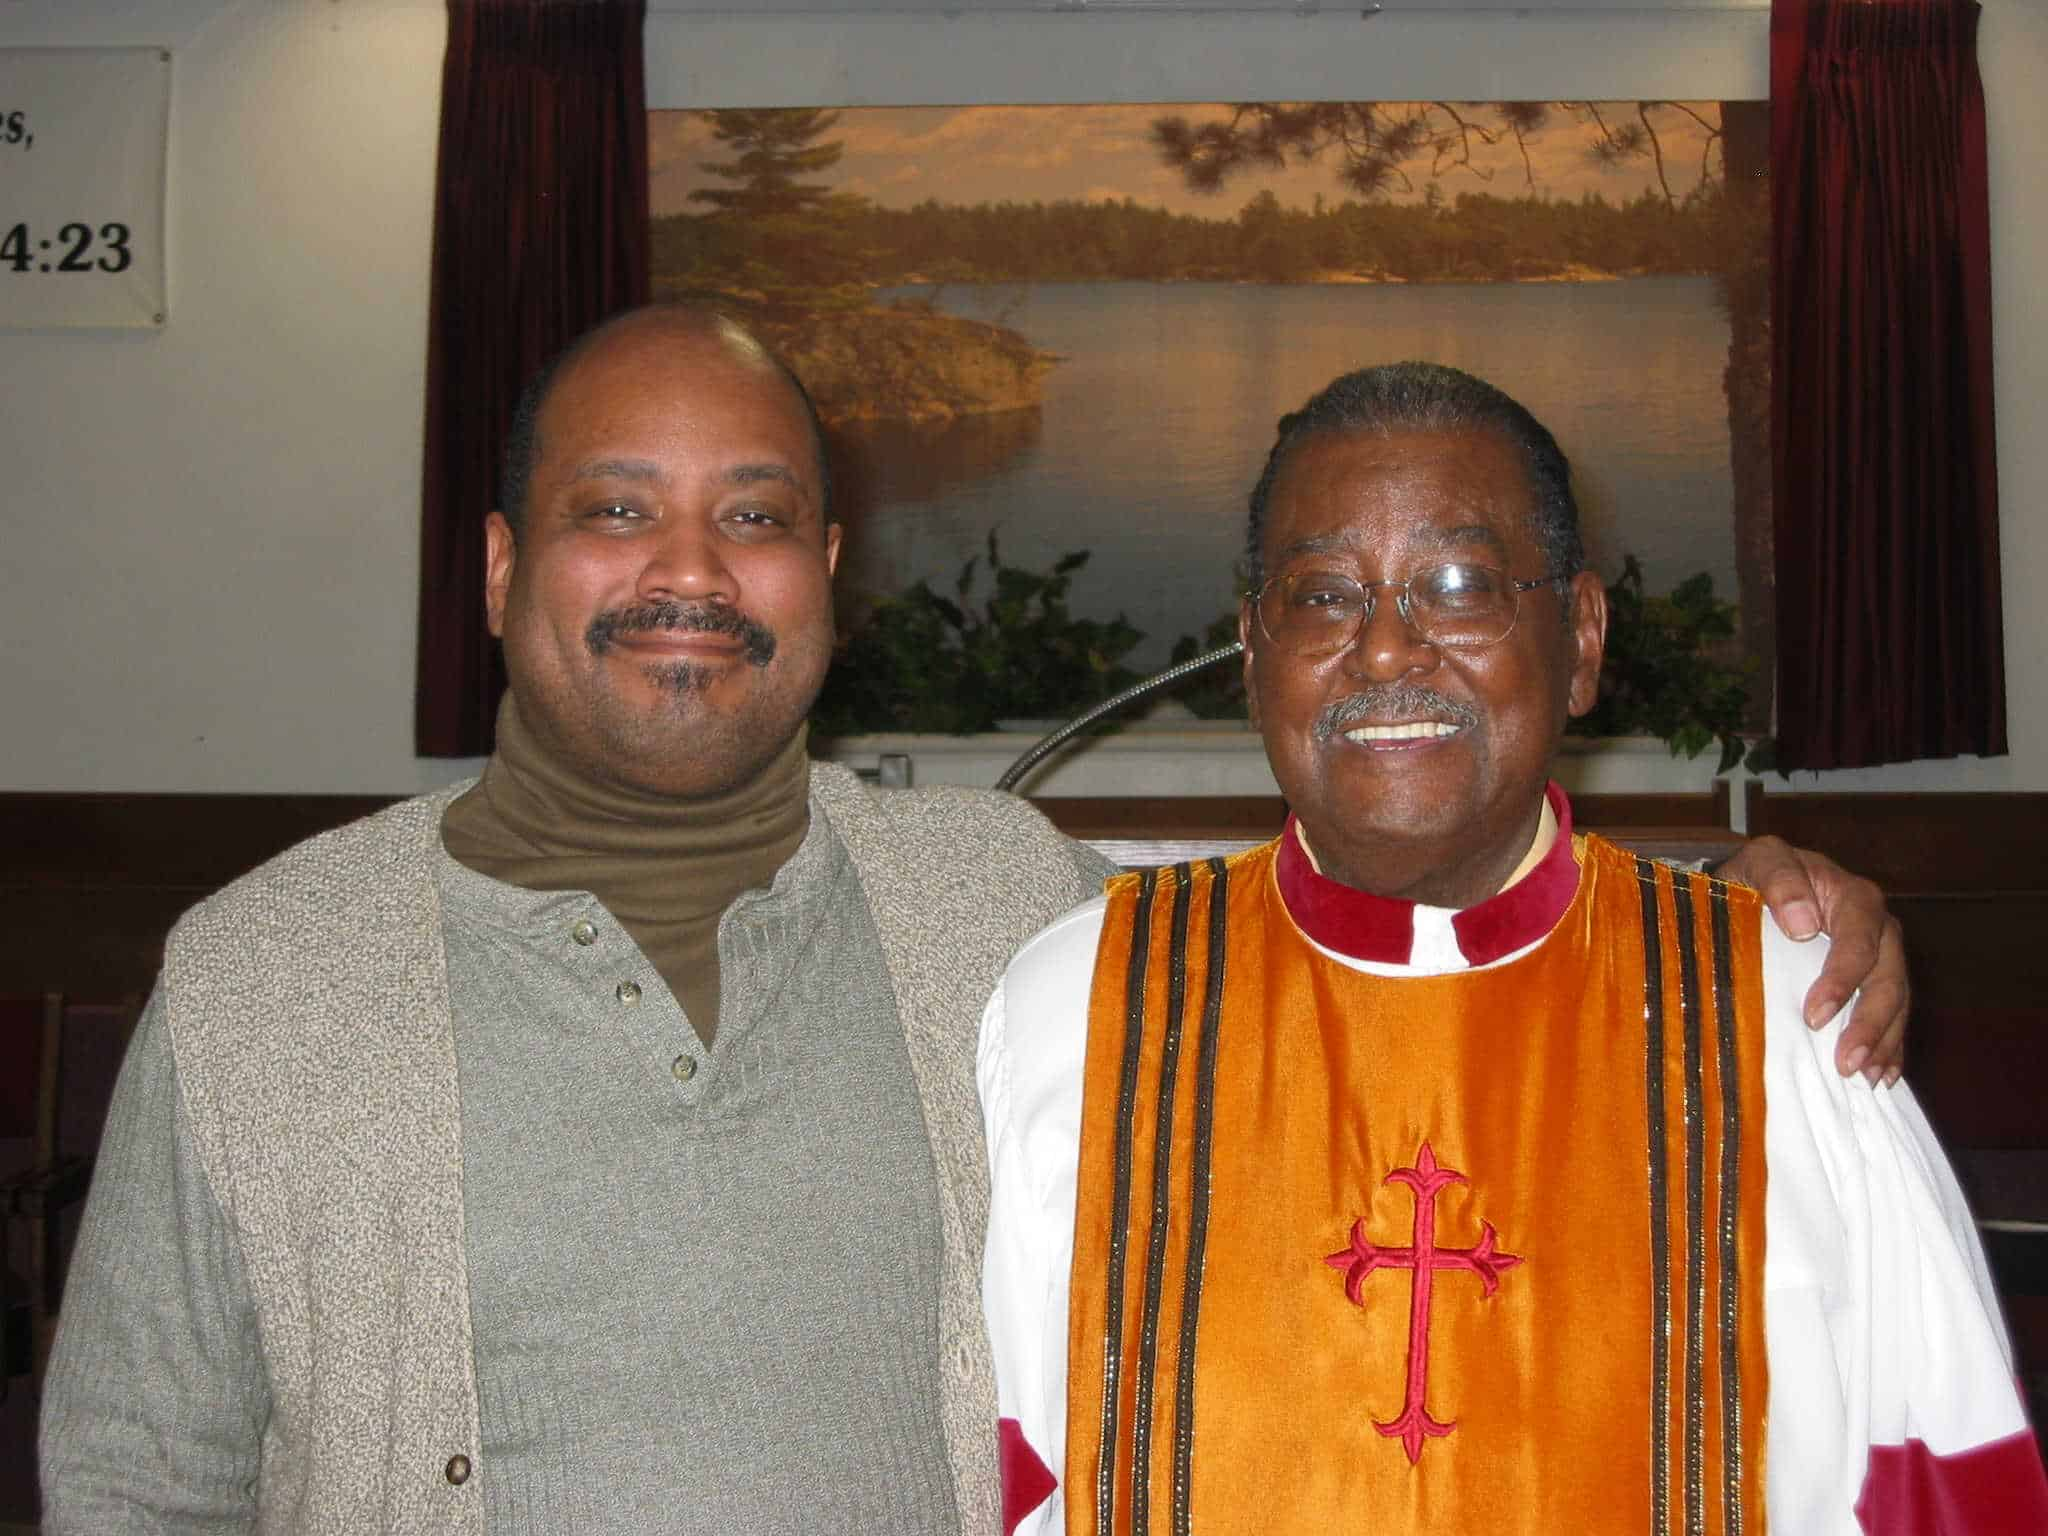 Pastor Kevin and Suff. Bishop Hobart L. Gregg